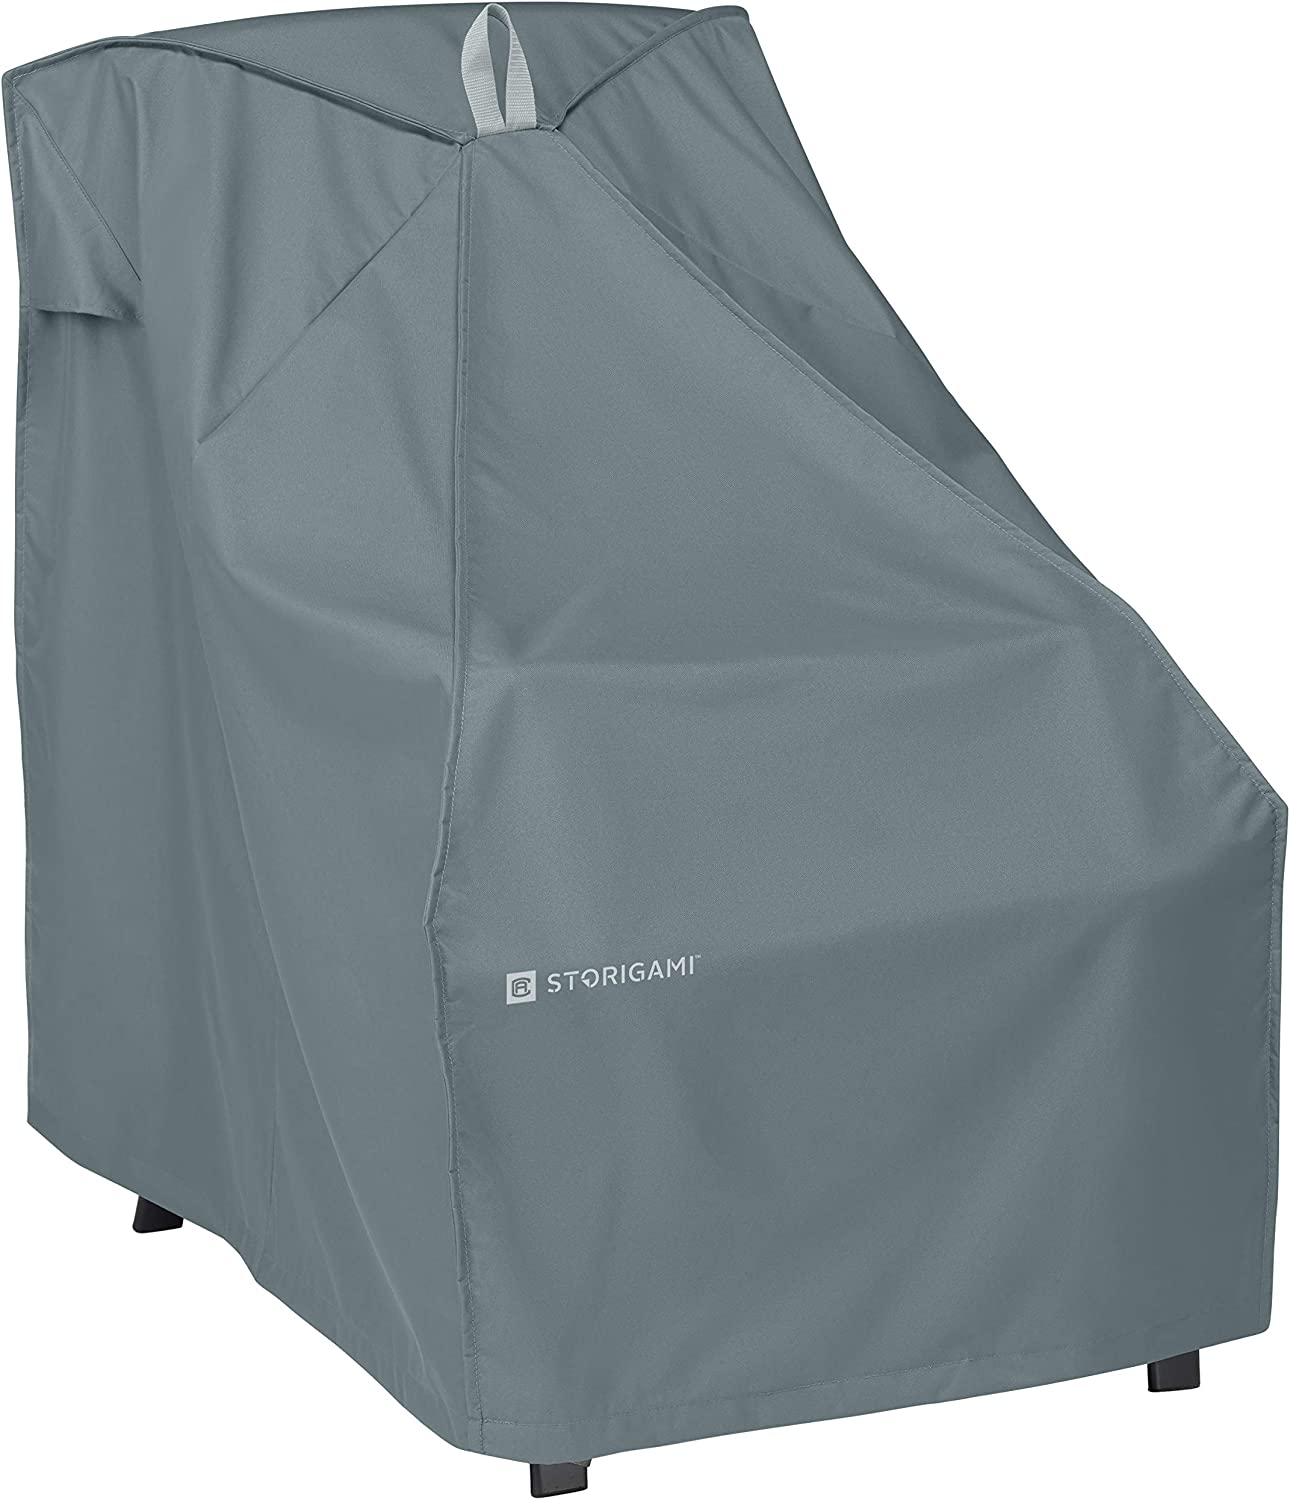 Classic Accessories Storigami Water-Resistant 26 Inch Easy Fold Patio High Back Chair Cover, Monument Grey